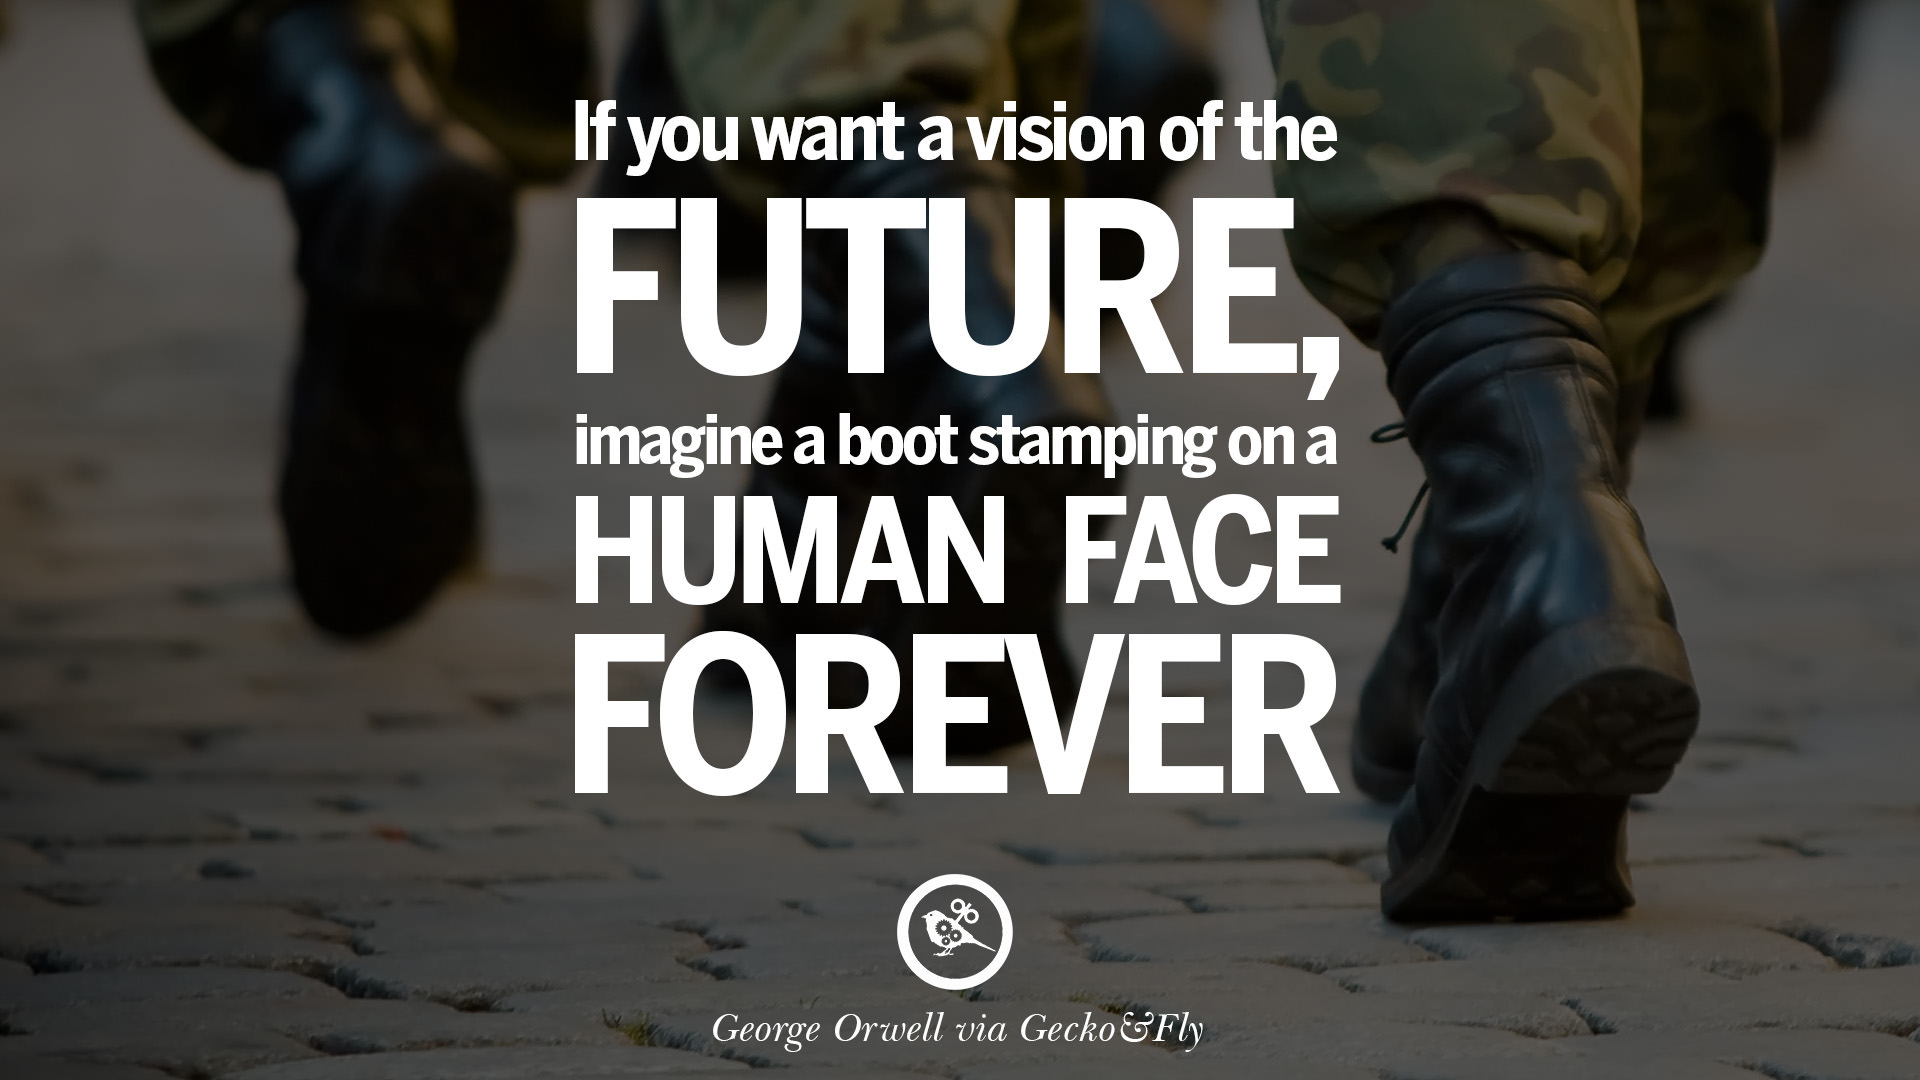 1984 I Love You Quote : If you want a vision of the future, imagine a boot stamping on a human ...